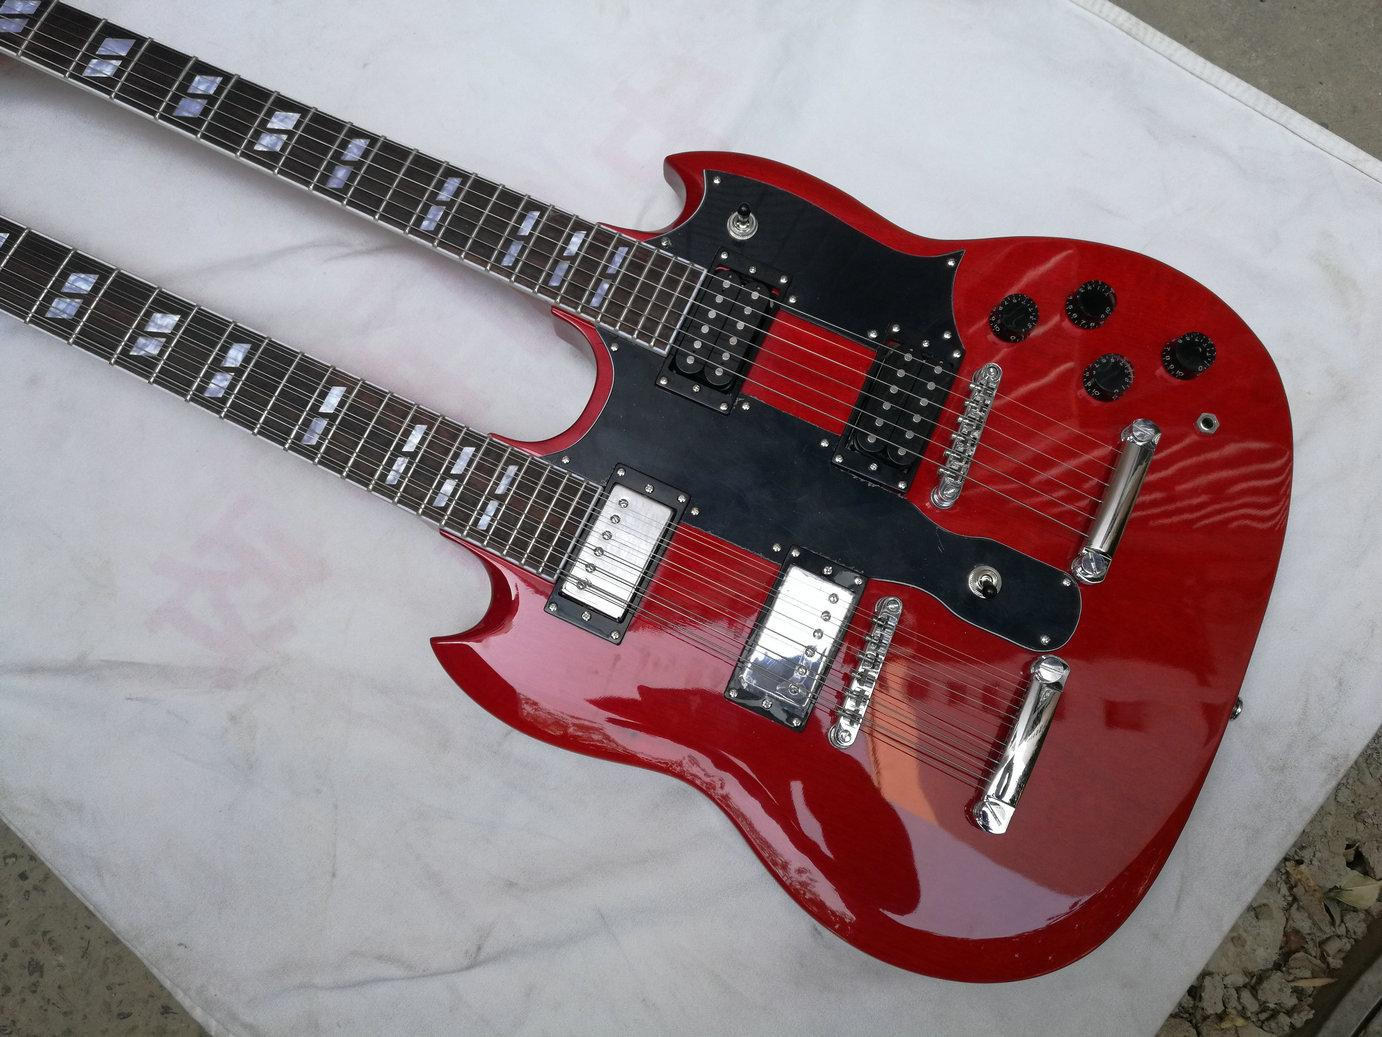 2017 new double neck guitar led zeppeli page 1275 double neck red body 12 strings guitar. Black Bedroom Furniture Sets. Home Design Ideas